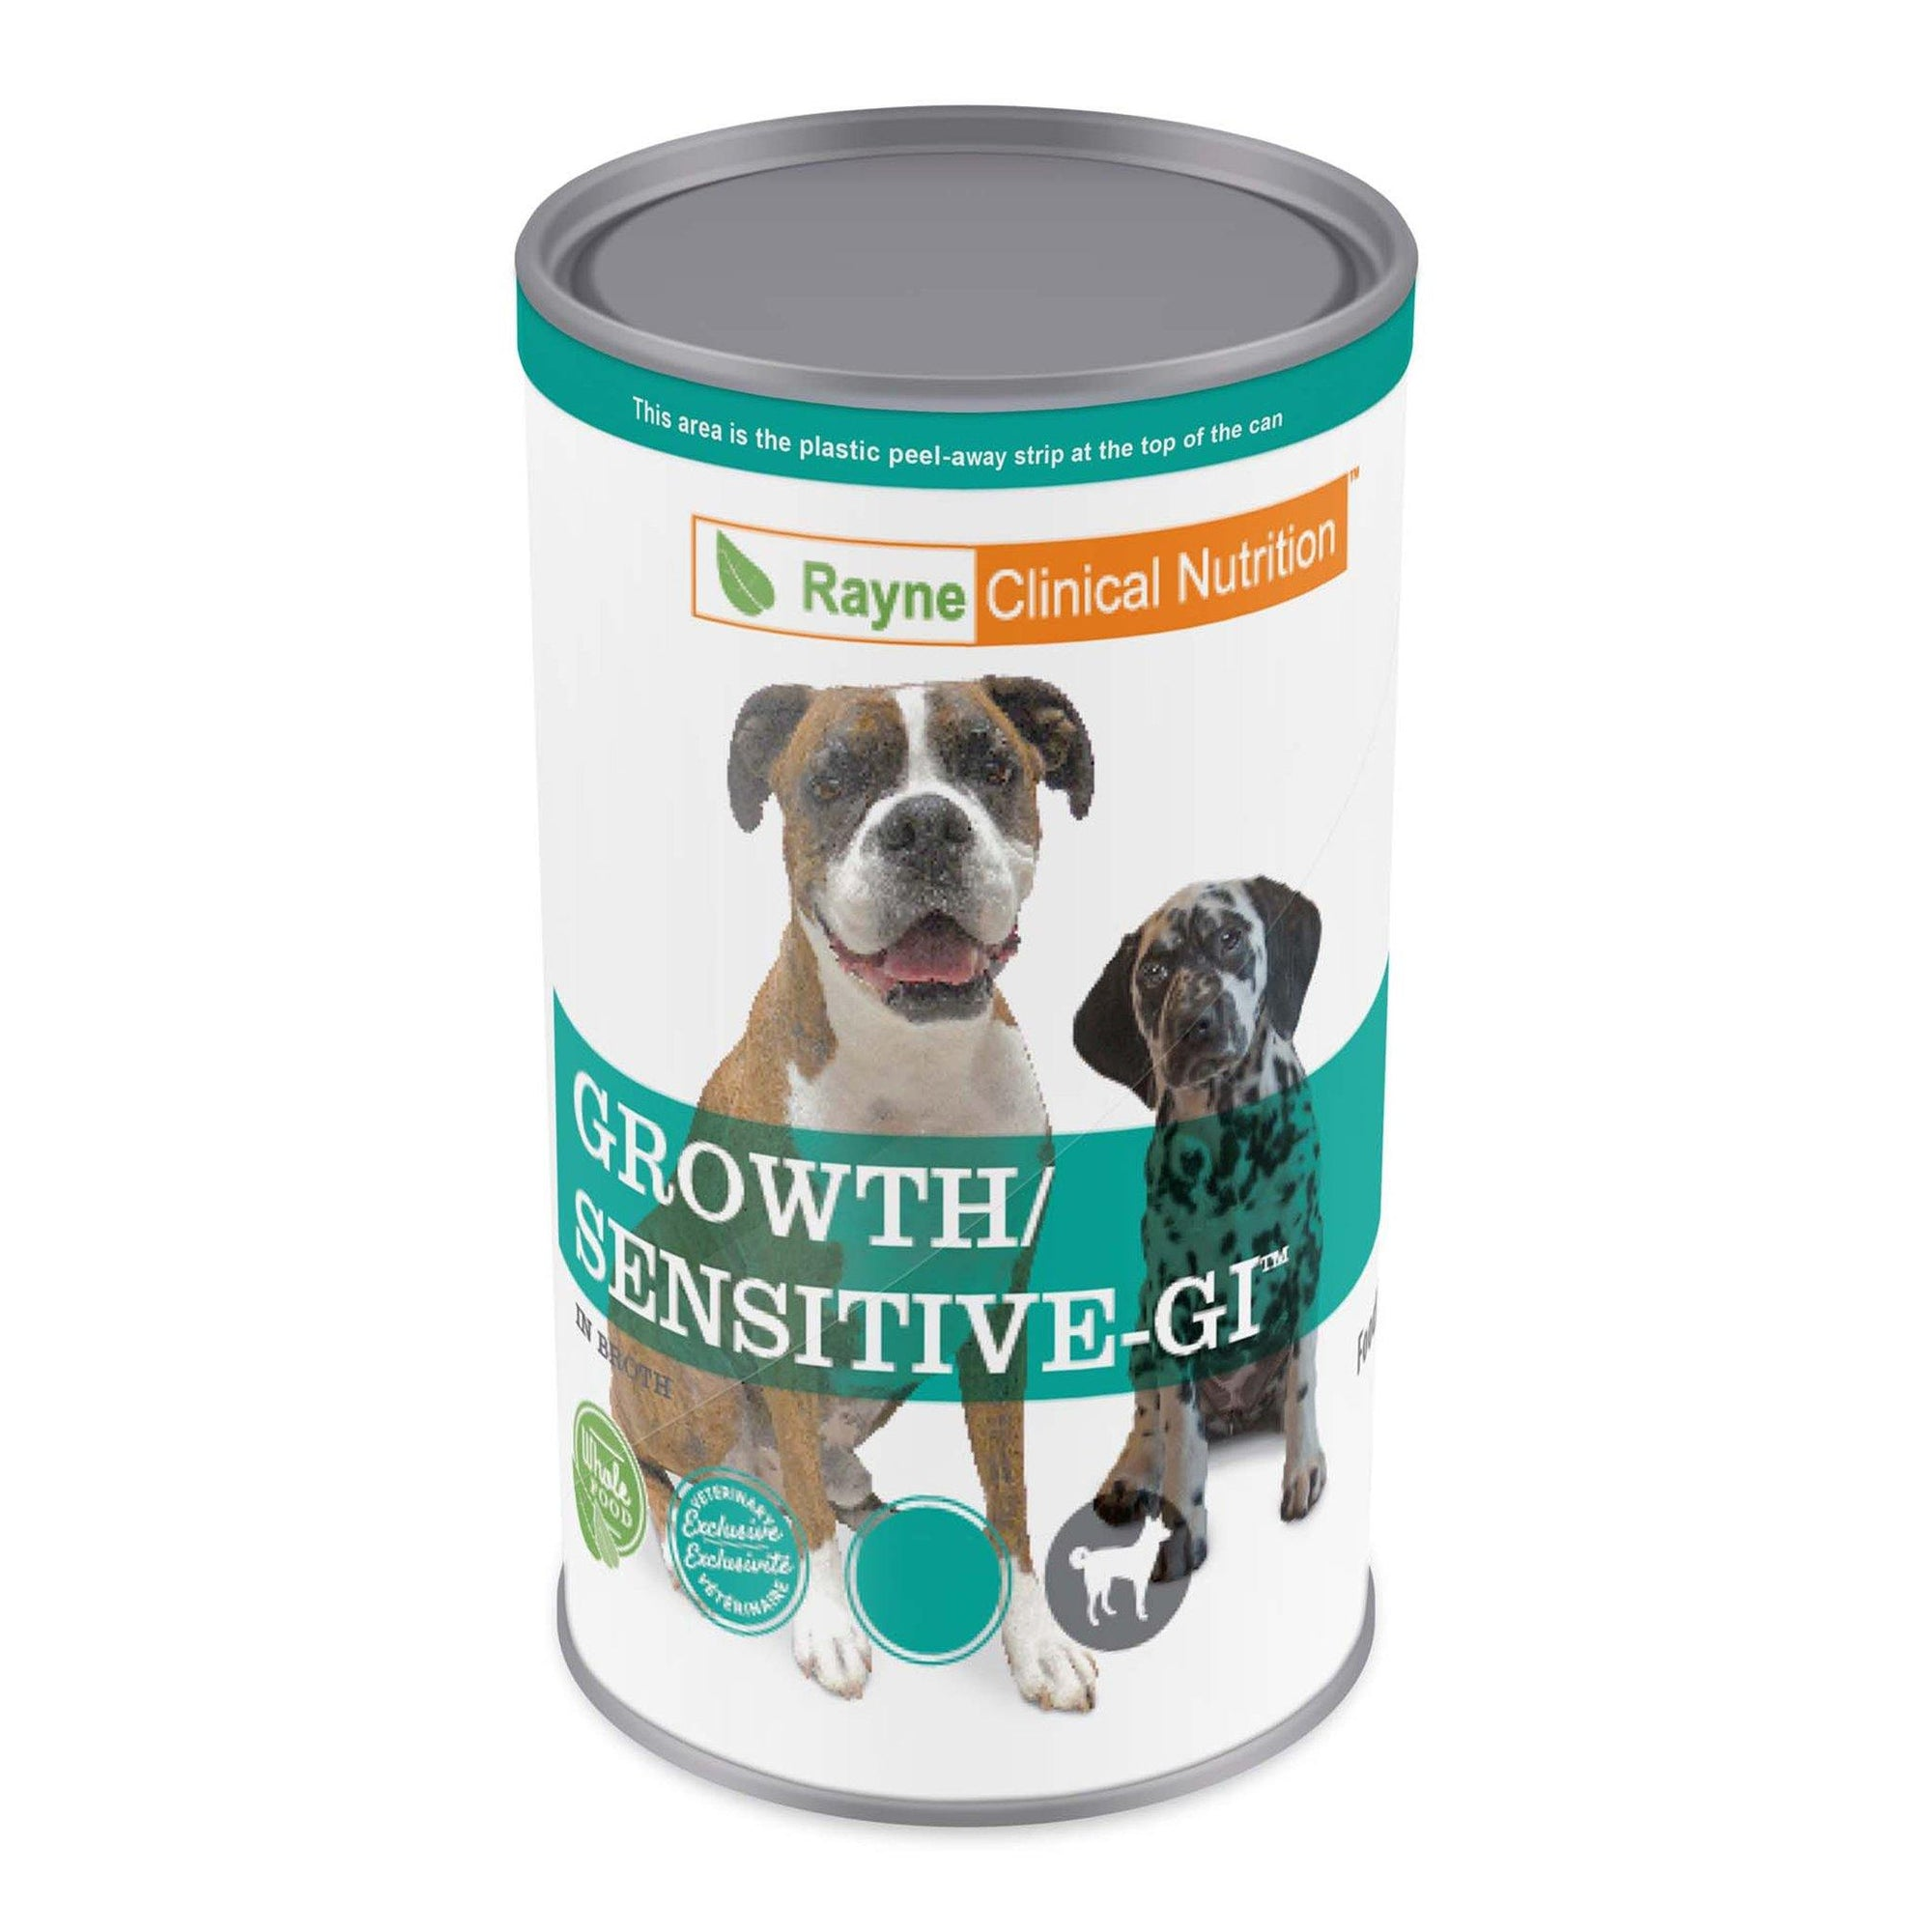 Growth/Sensitive-GI Canine Cans